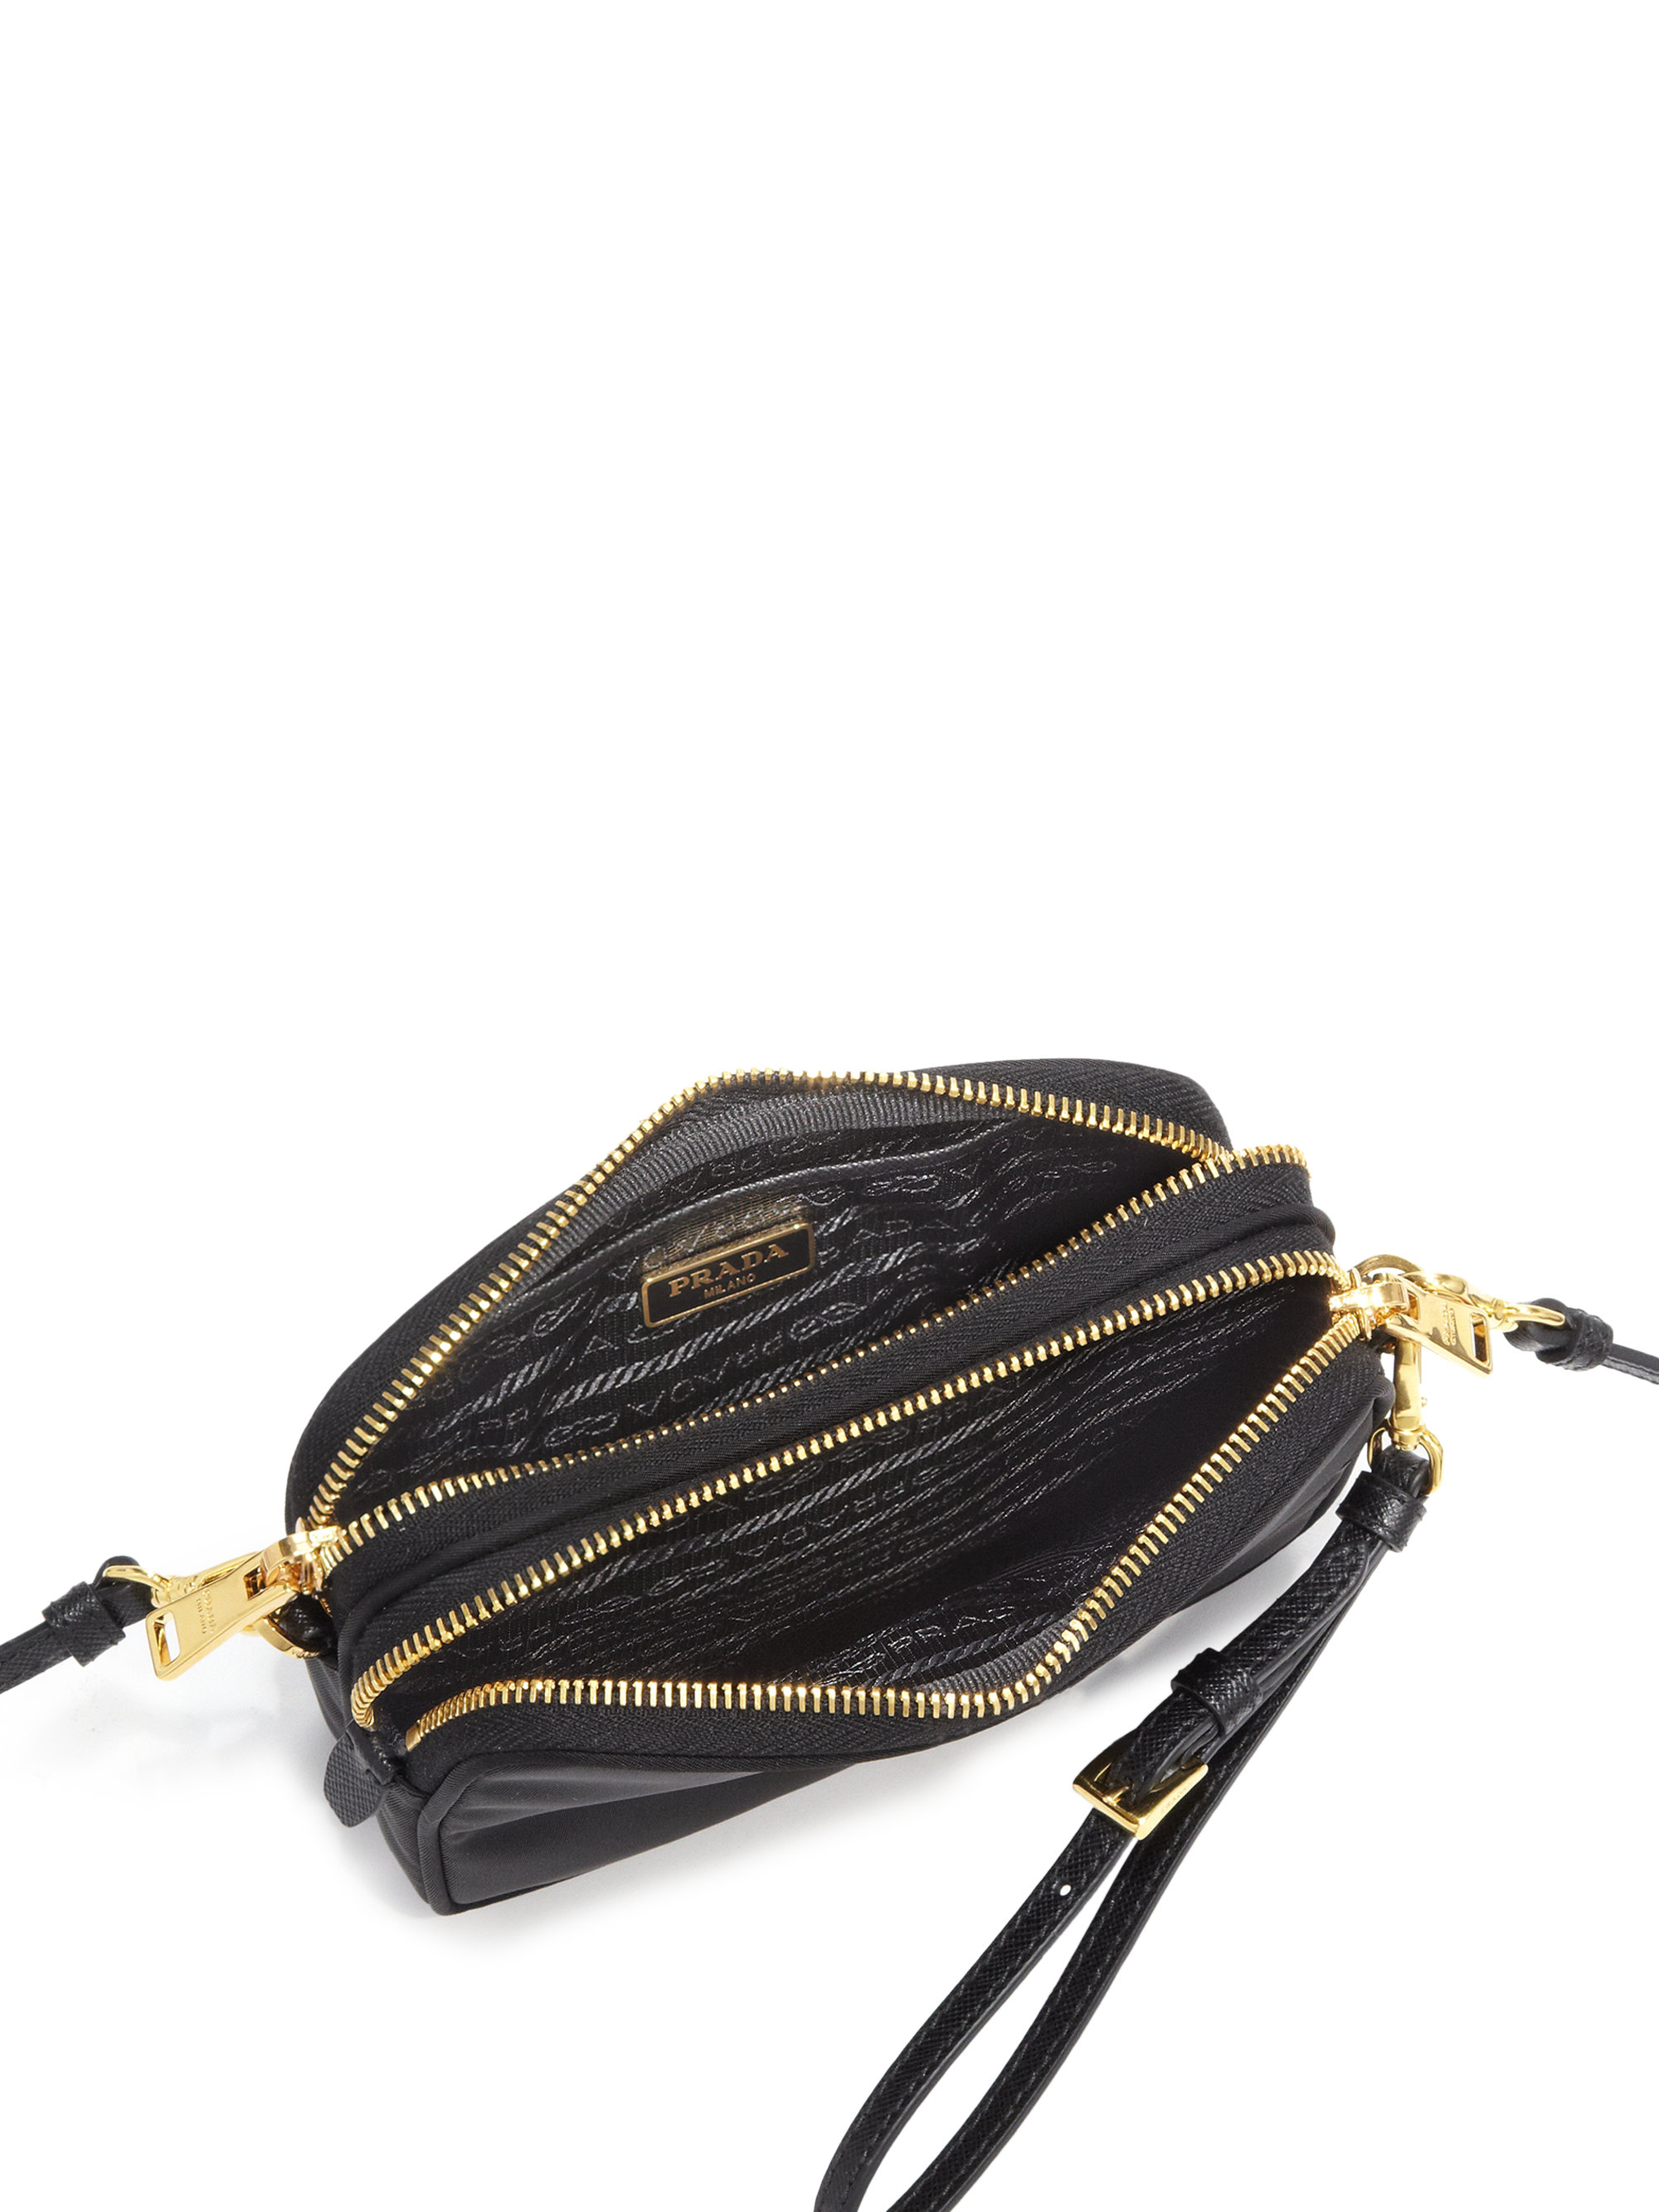 77f0b7f92848 ... coupon for prada nylon camera bag in black lyst a3c87 4e450